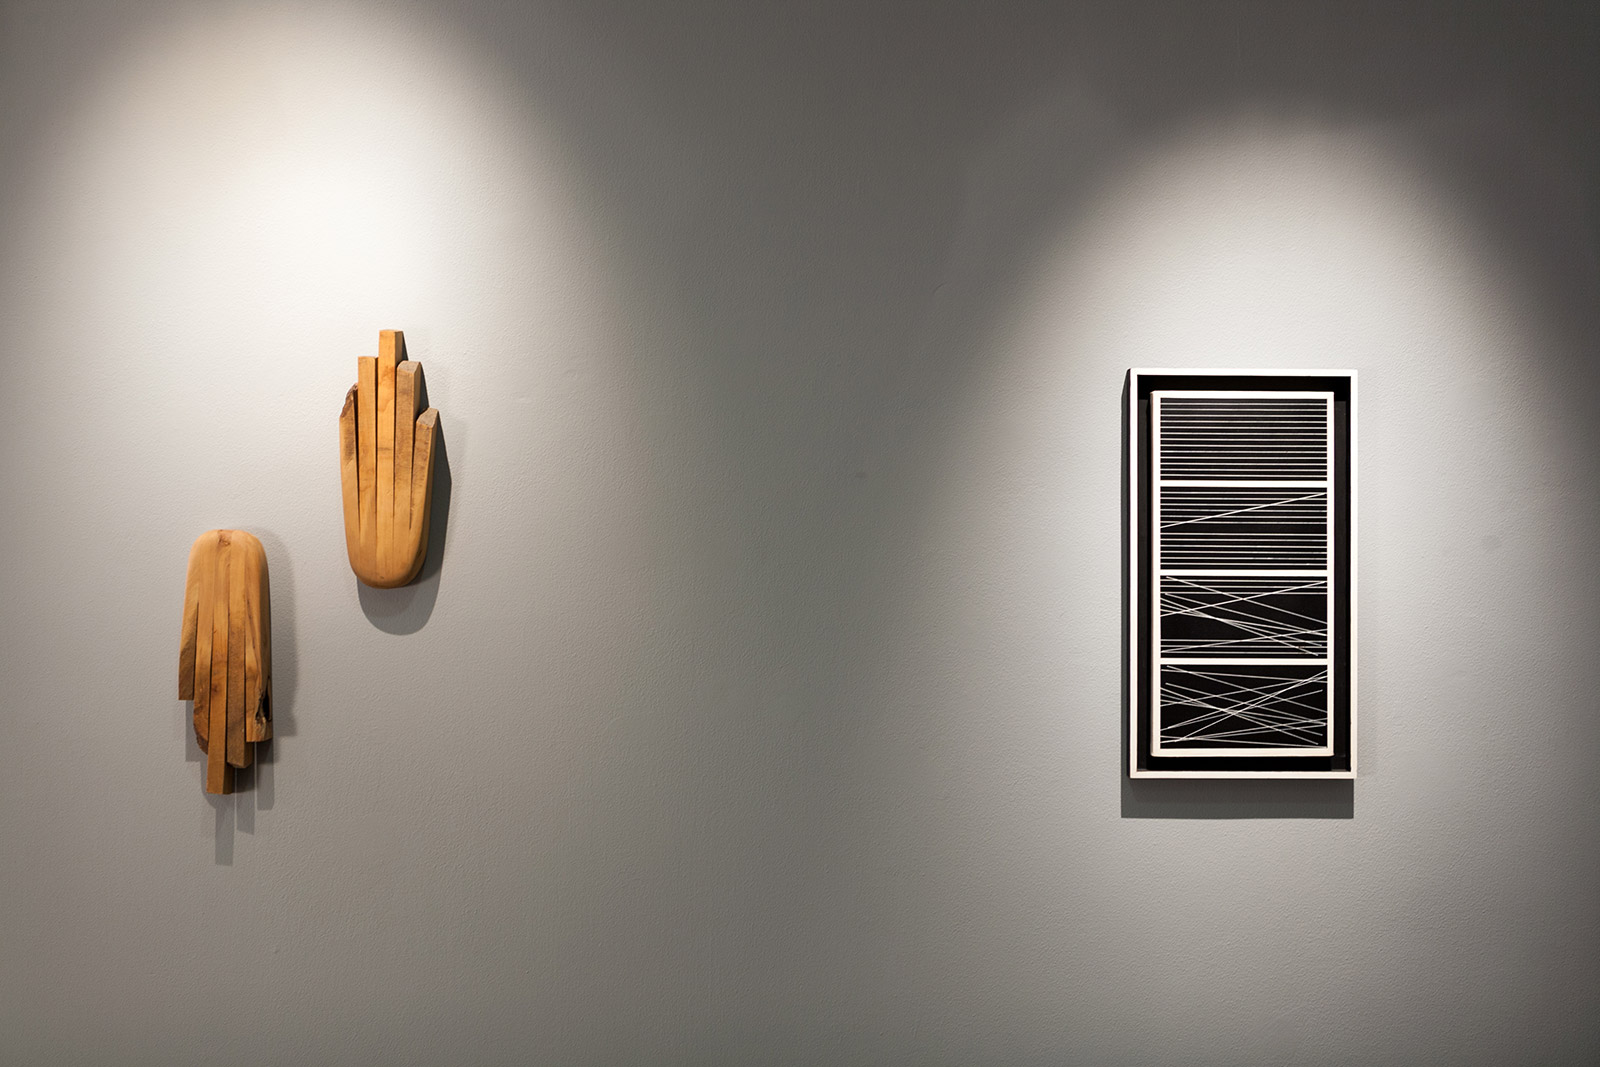 Installation view - Hilmar